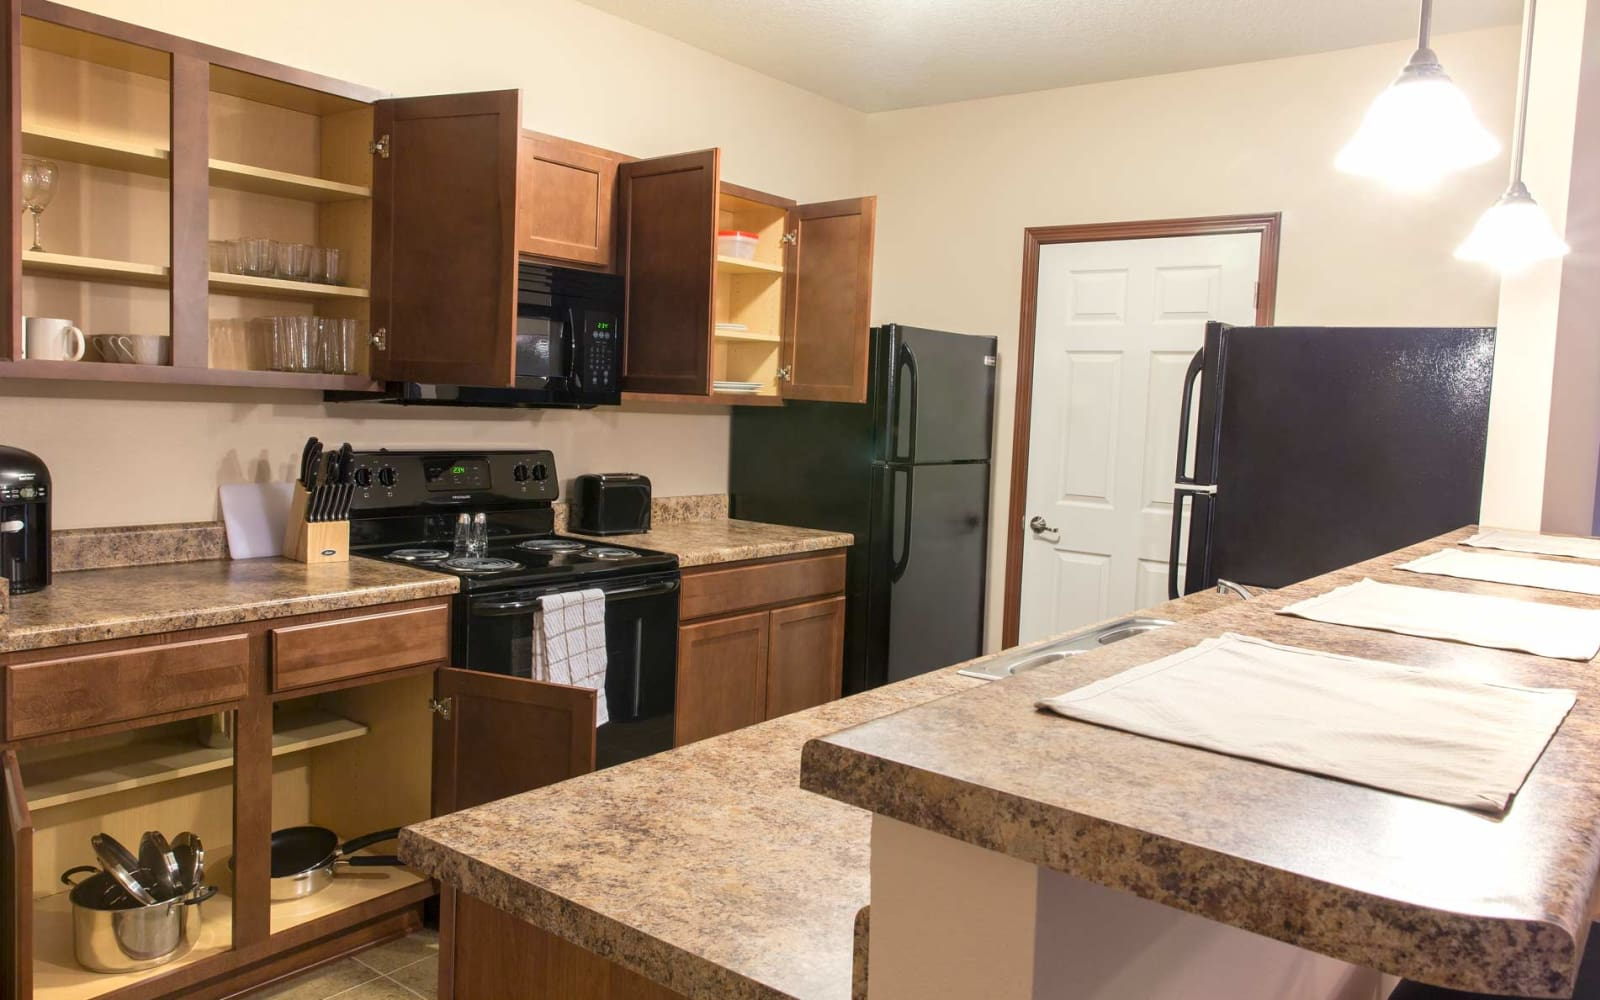 The kitchen cabinets have plenty of storage space at Prairie Pointe Student Living in Ankeny, Iowa